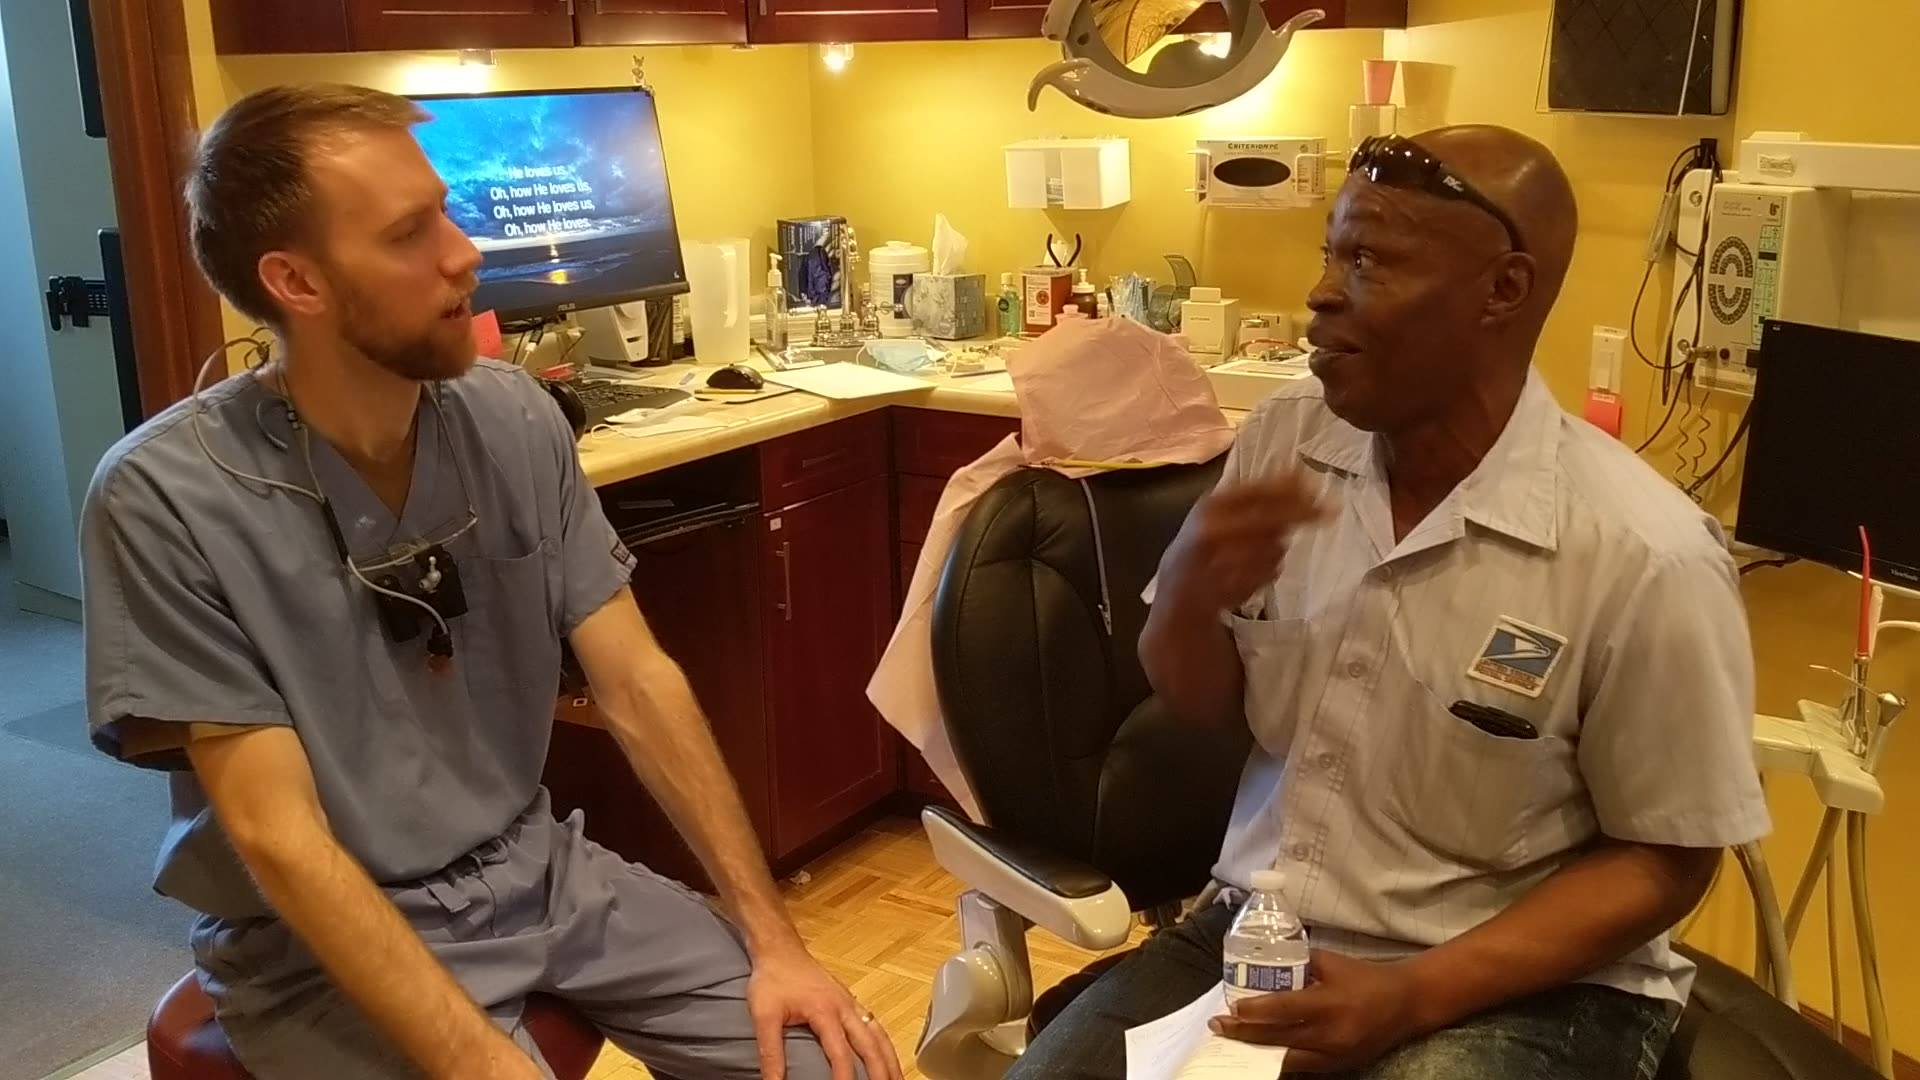 One of our patients wanted to share his story and experience after receiving his new  performed by Dr. David. Call our office to schedule your free implant consultation 708-383-9099 or visit us to learn more at Rfamilydental.net #minidentalimplants #